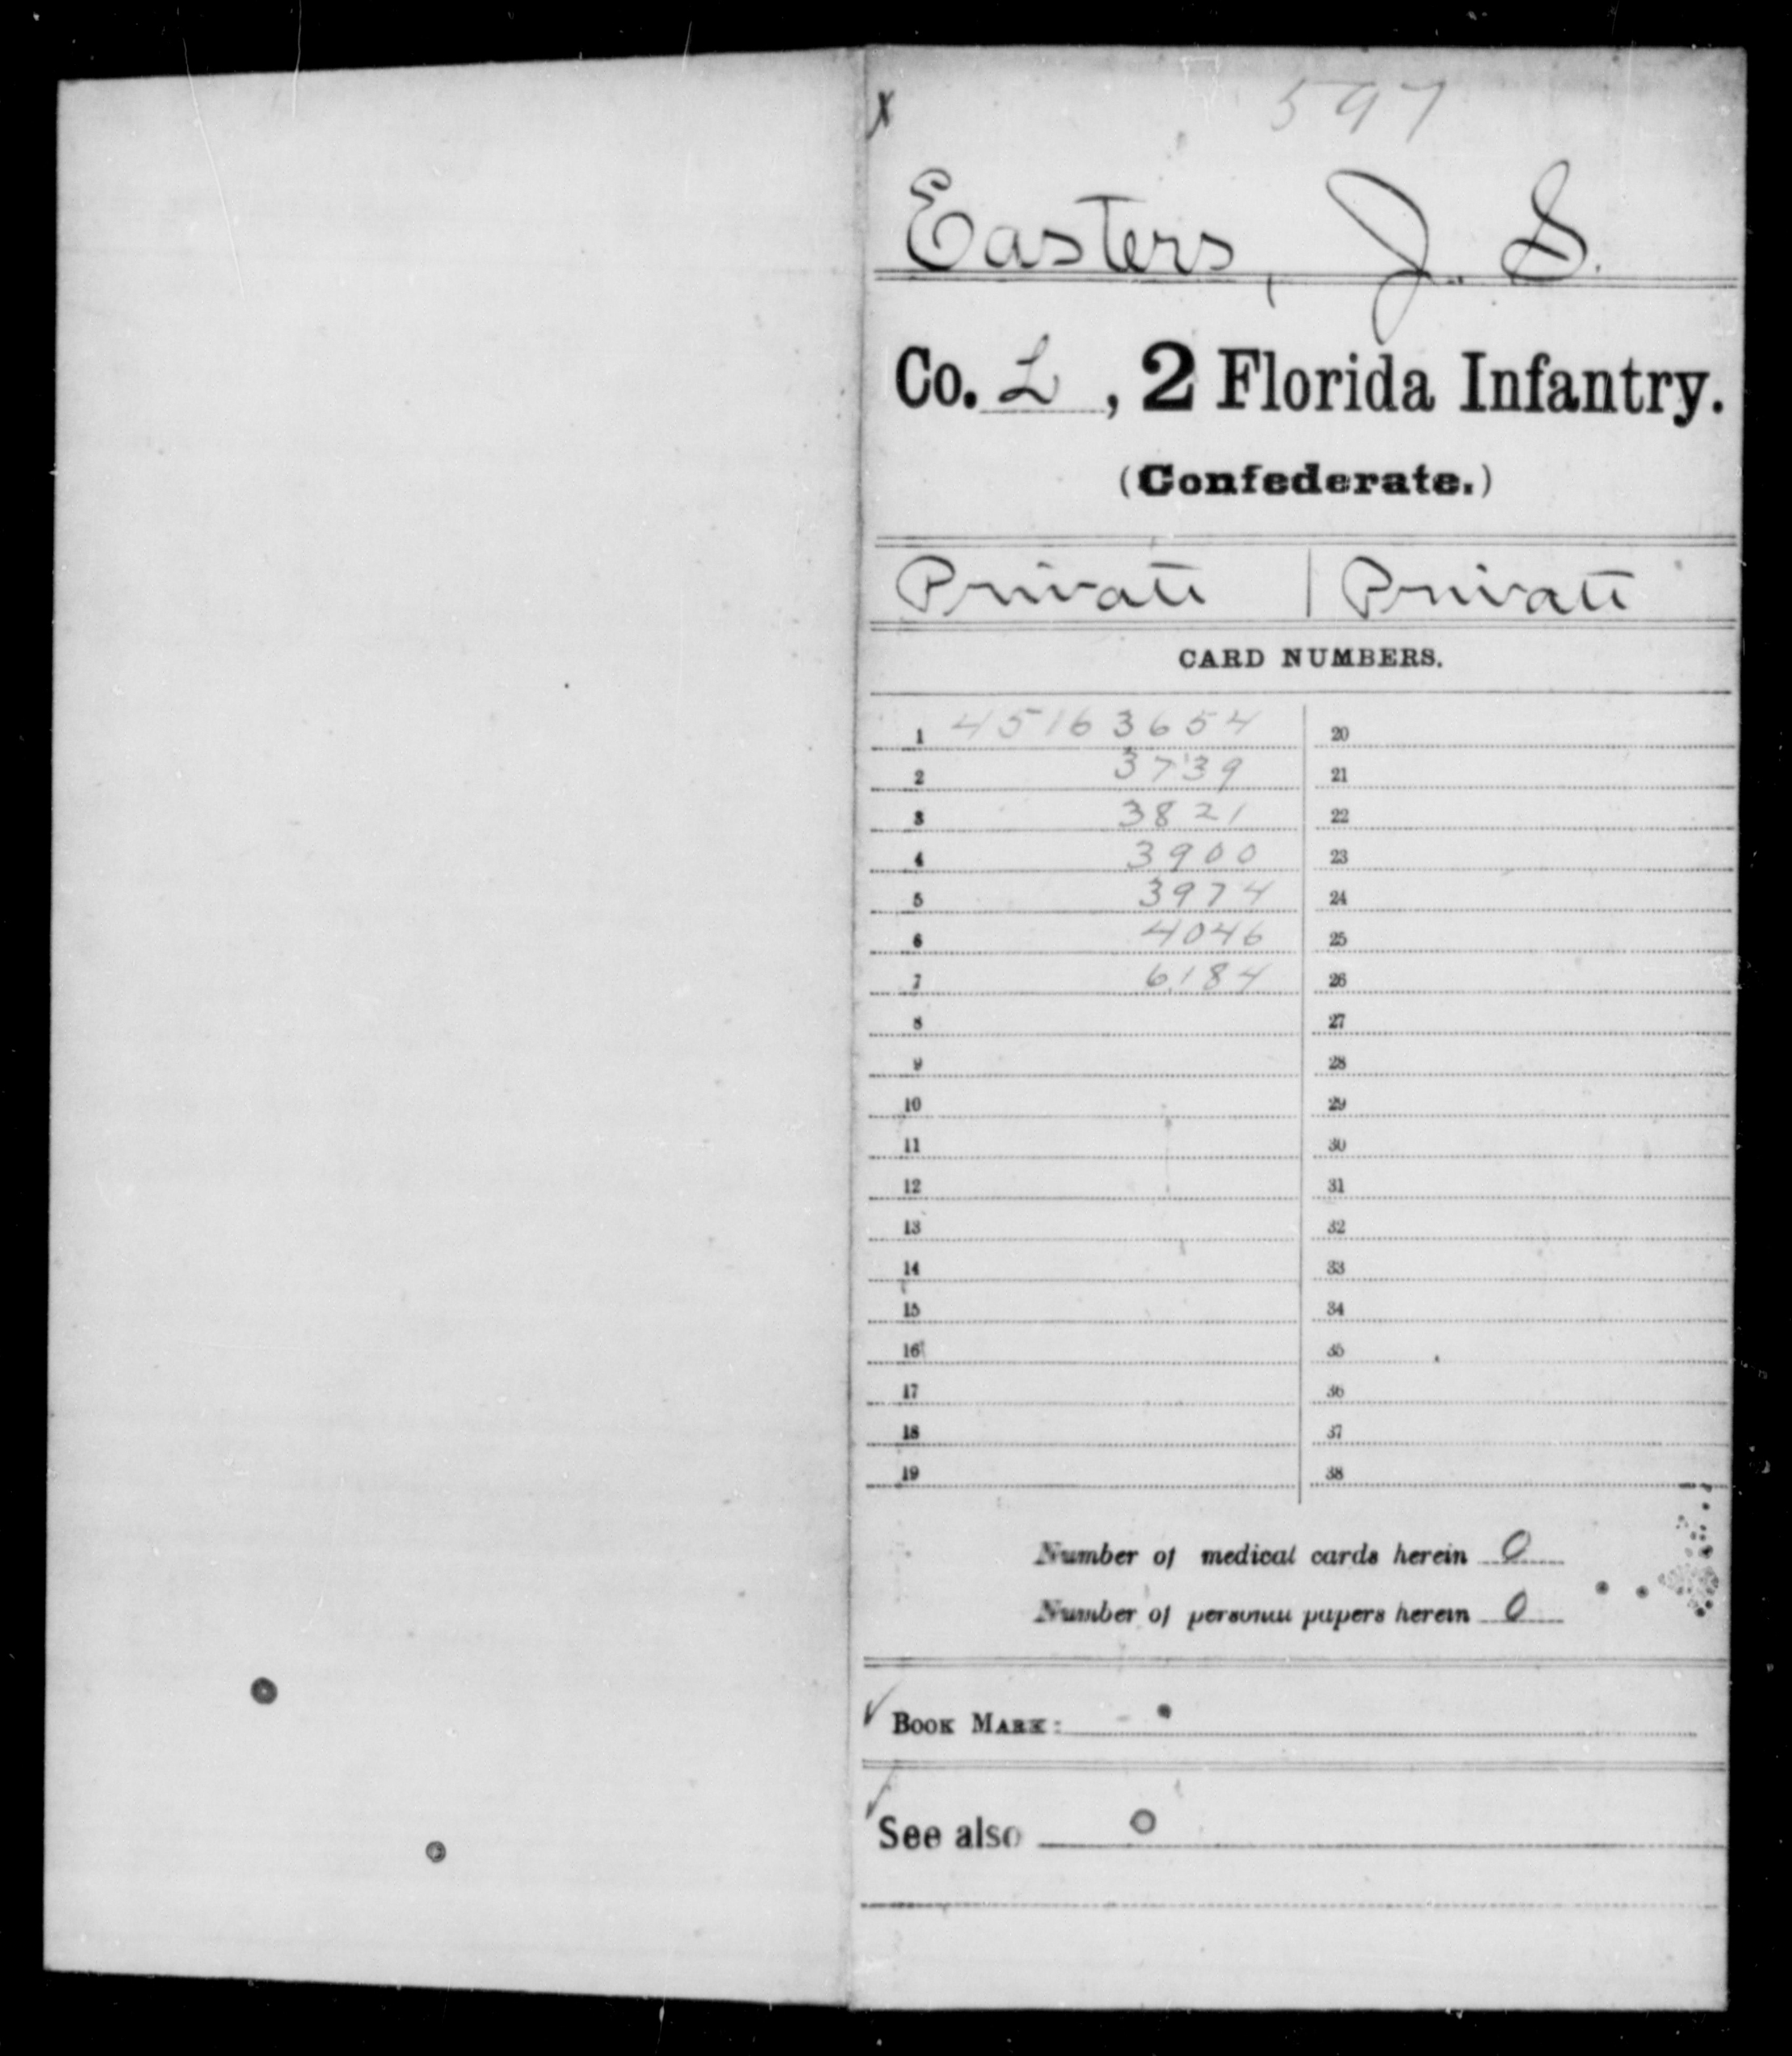 [Florida] Easters, Jno S - Age 24, Year: 1861 - Second Infantry (Co-E)